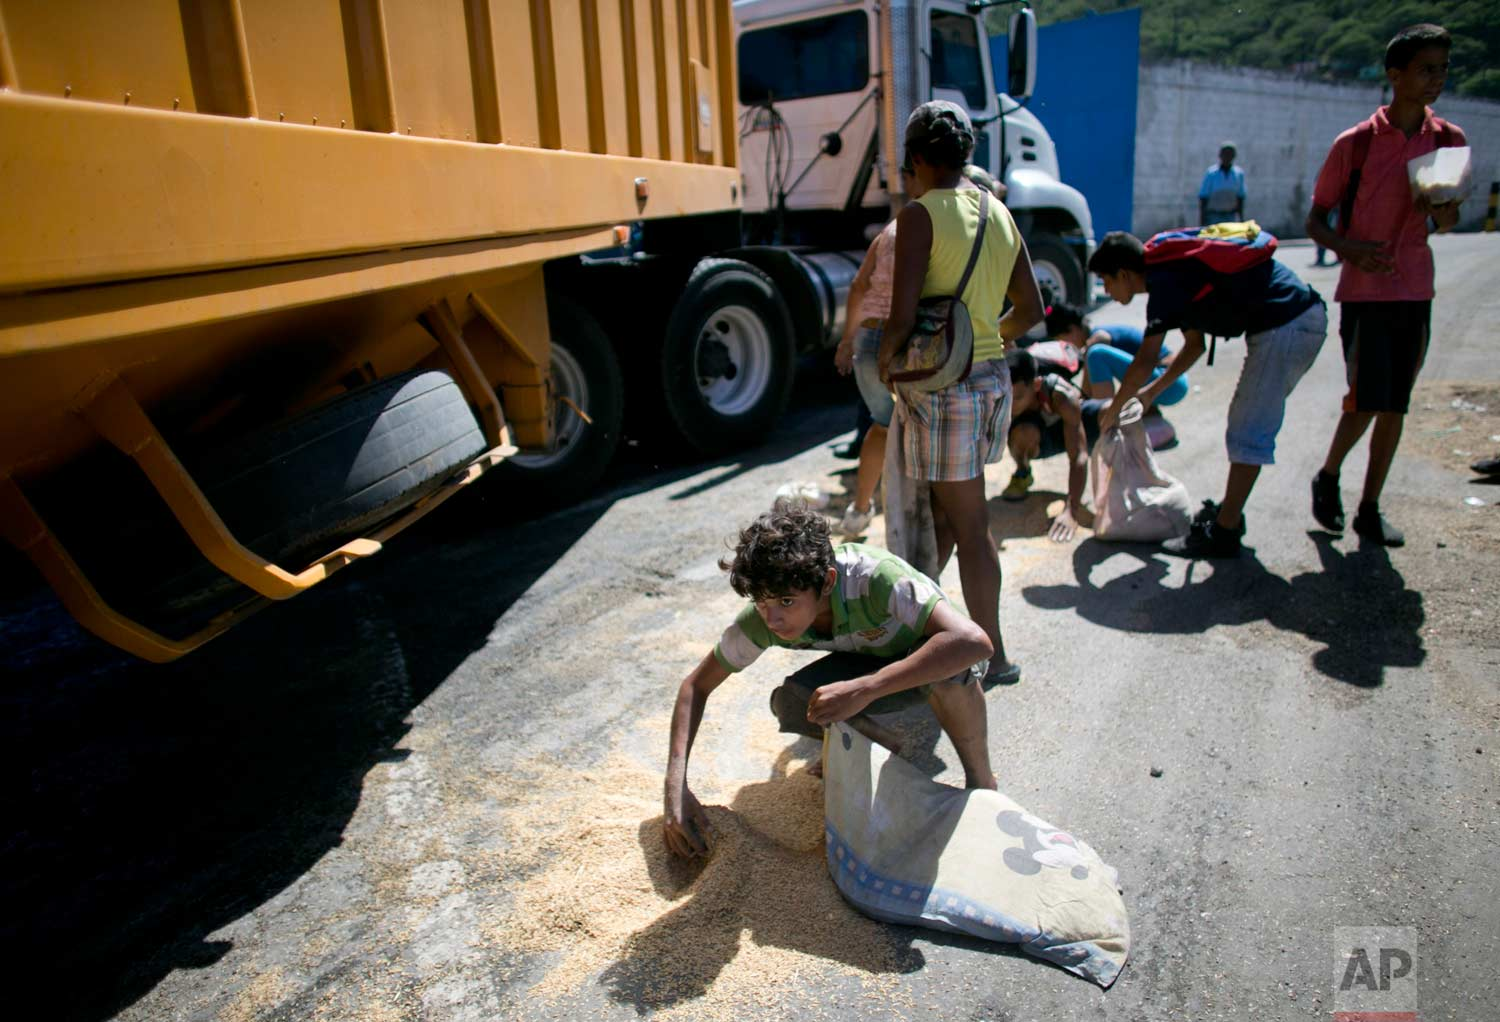 In this Nov. 14, 2016 photo, a boy uses his pillowcase as a bag to collect rice from the pavement that shook loose from a food cargo truck waiting to enter the port in Puerto Cabello, Venezuela, the port that handles the majority of Venezuela's food imports. As millions of Venezuelans go hungry this year, food trafficking has become one of the most lucrative businesses in the country. (AP Photo/Ariana Cubillos)